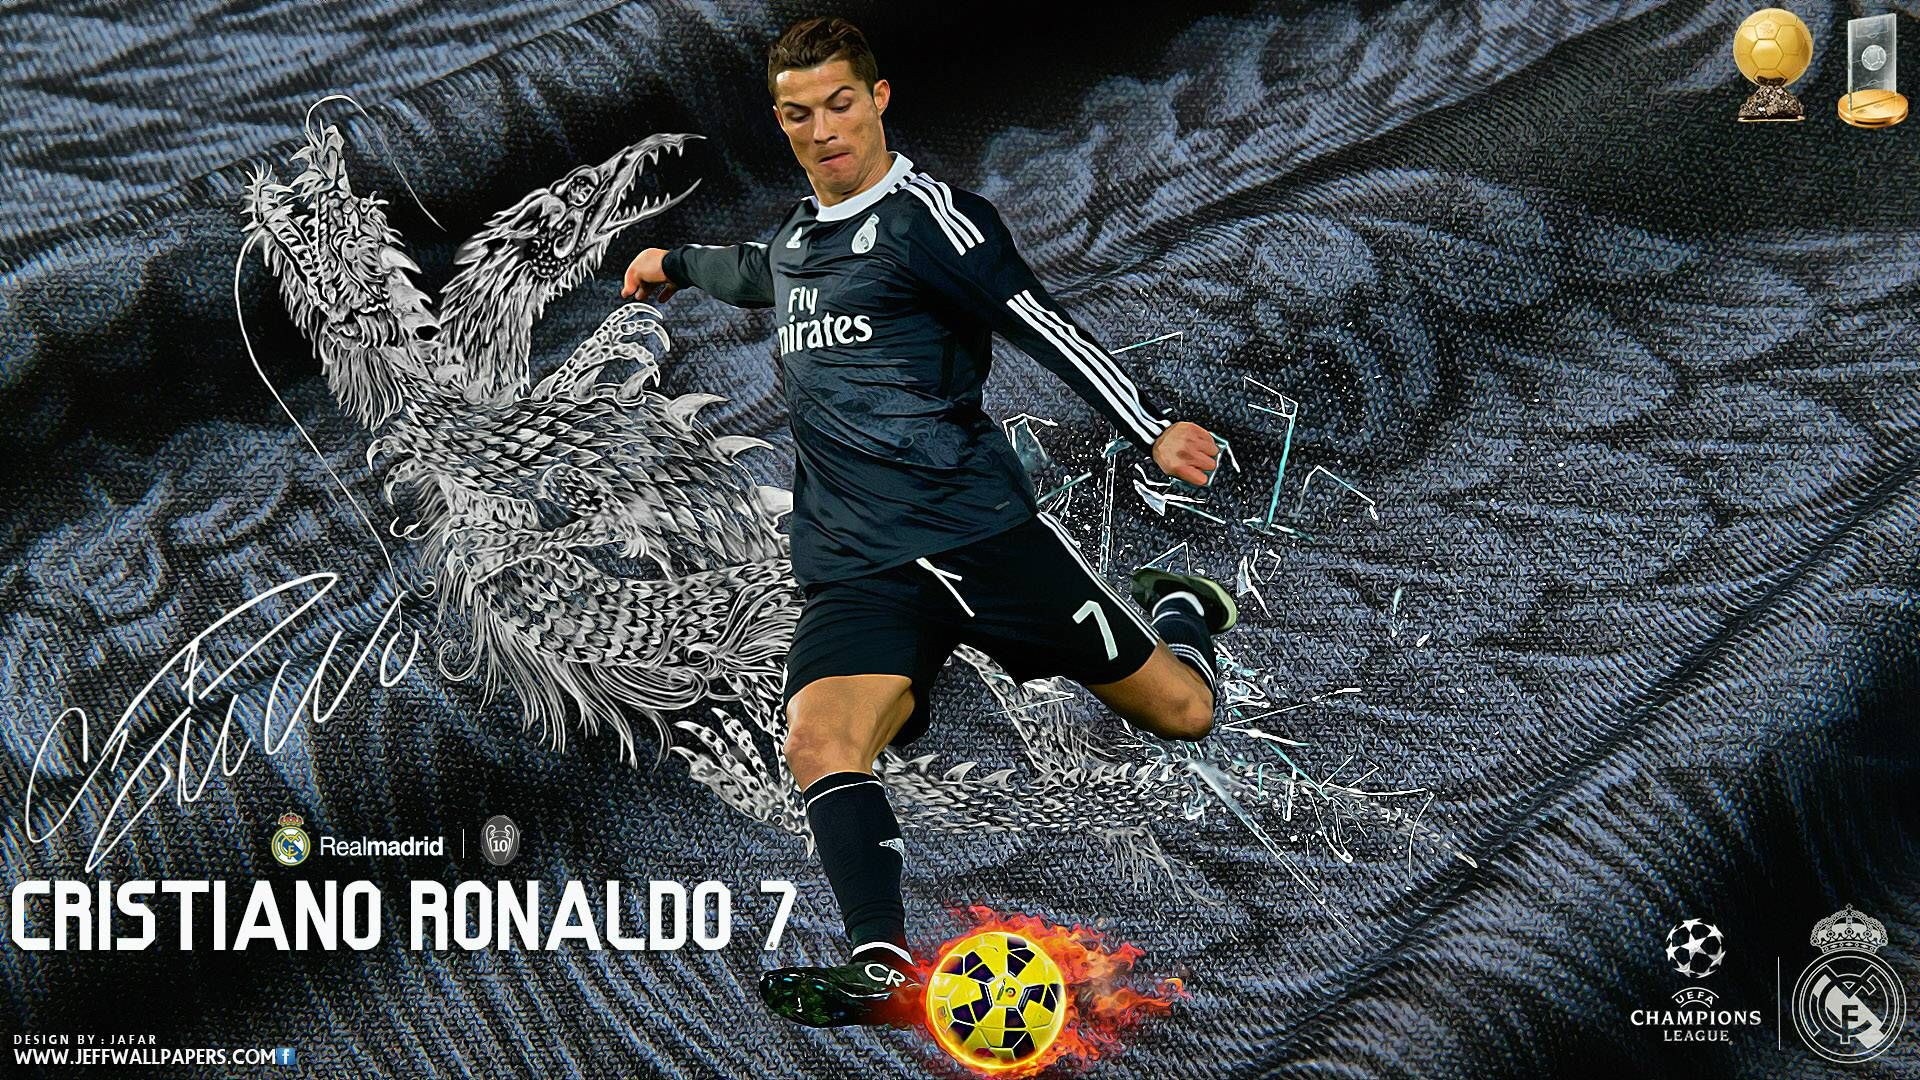 Home | football betting tips | Cristiano ronaldo wallpapers